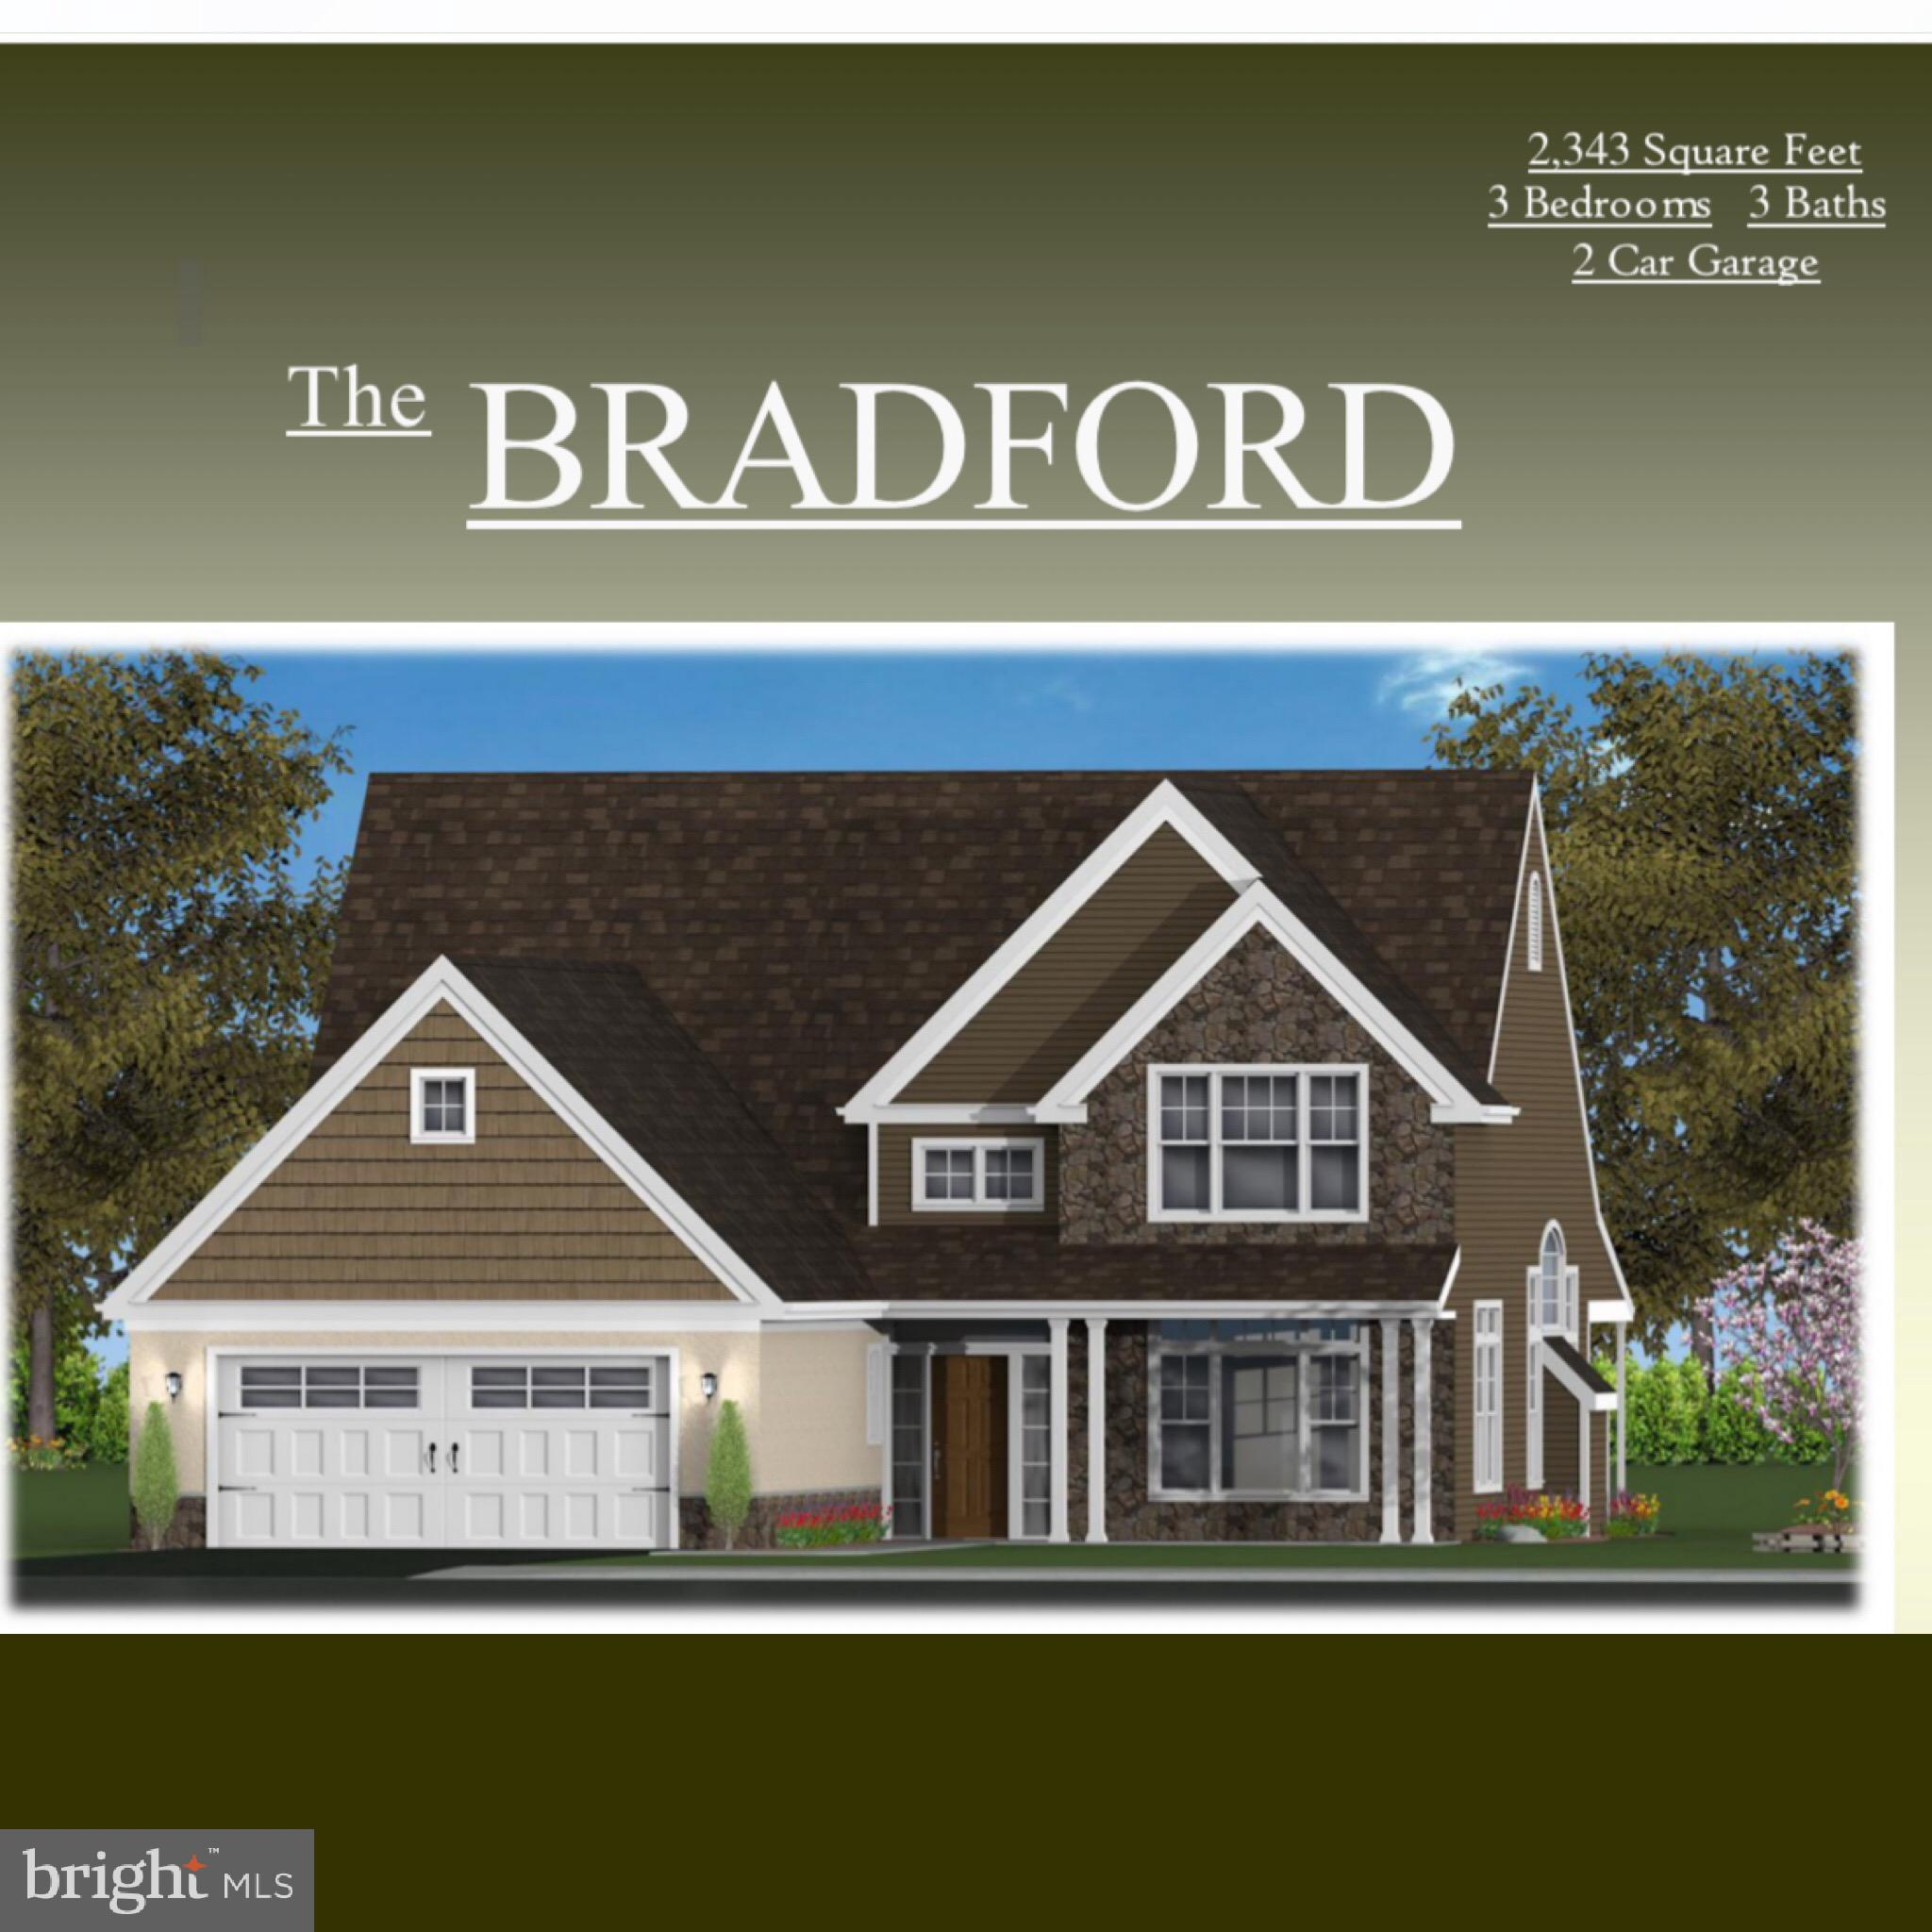 0 THE BRADFORD - ALDEN HOMES AT MOUNTAIN MEADOWS, MYERSTOWN, PA 17067